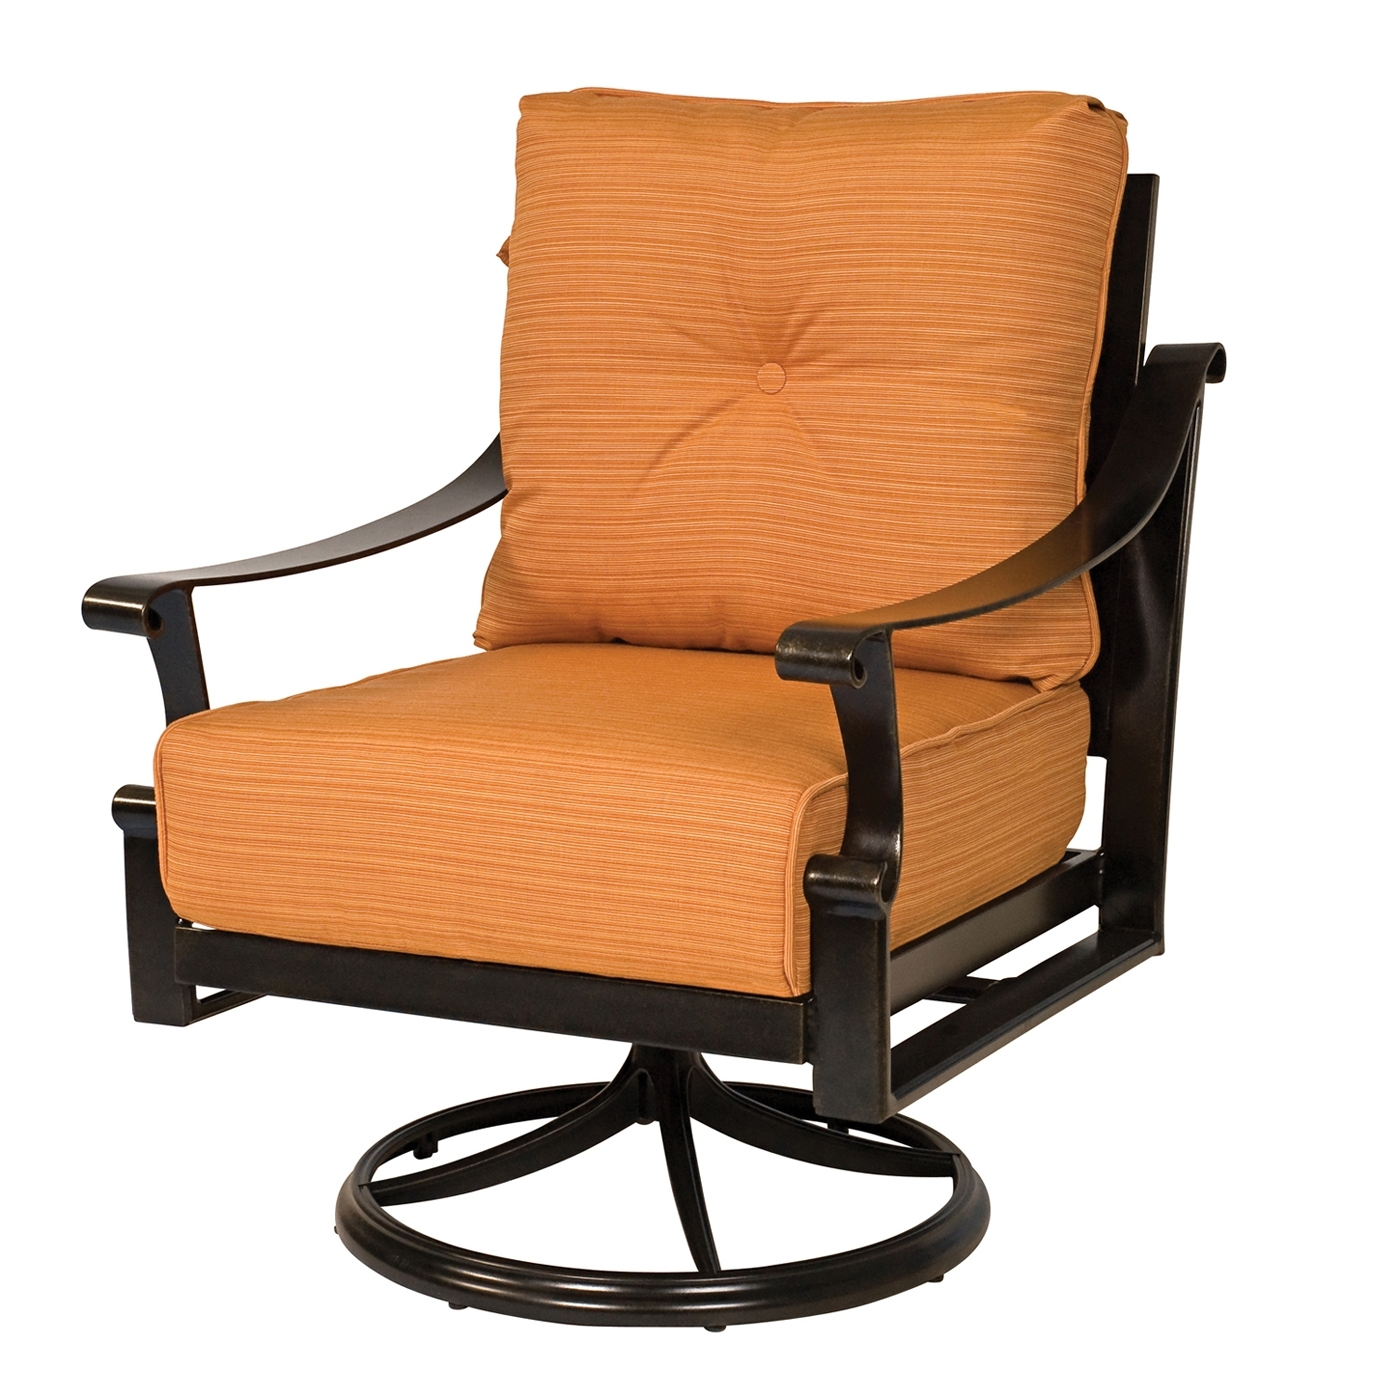 Most Current Inspirational Swivel Rocker Patio Chair Dmsgb Mauriciohm Outdoor Intended For Patio Rocking Chairs With Covers (View 20 of 20)